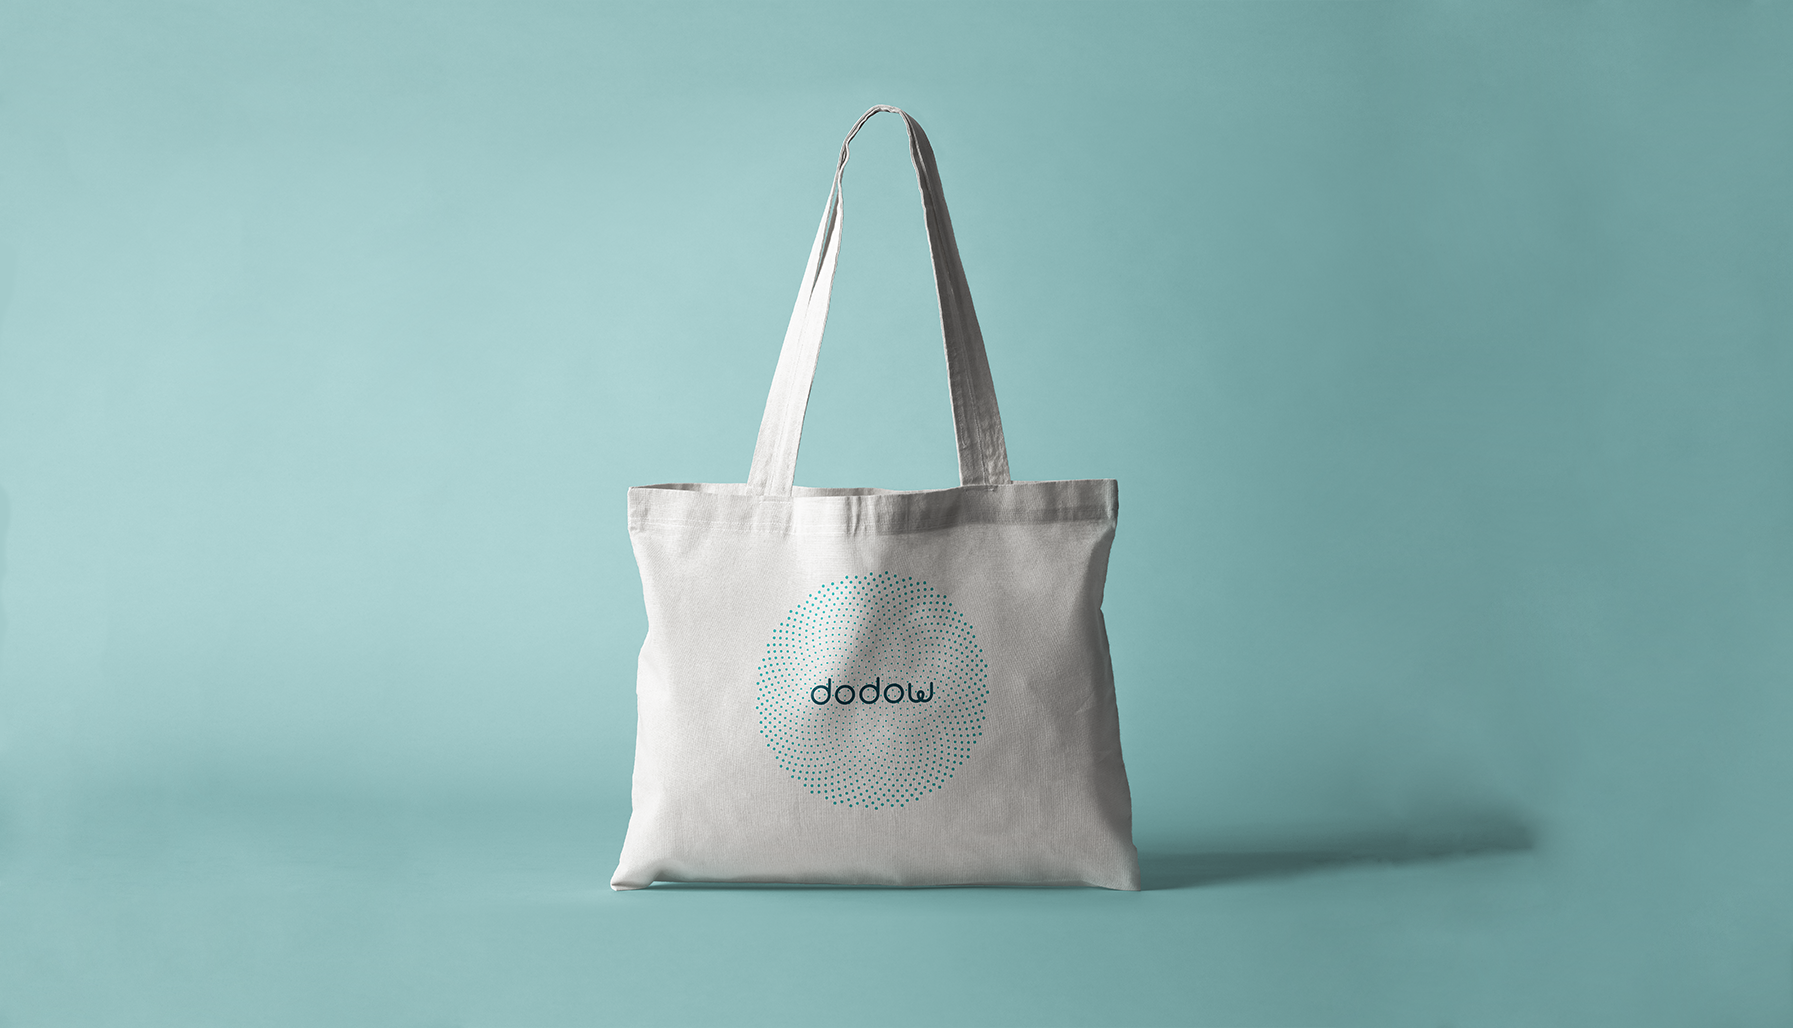 Yellowlab_Dodow_ToteBag